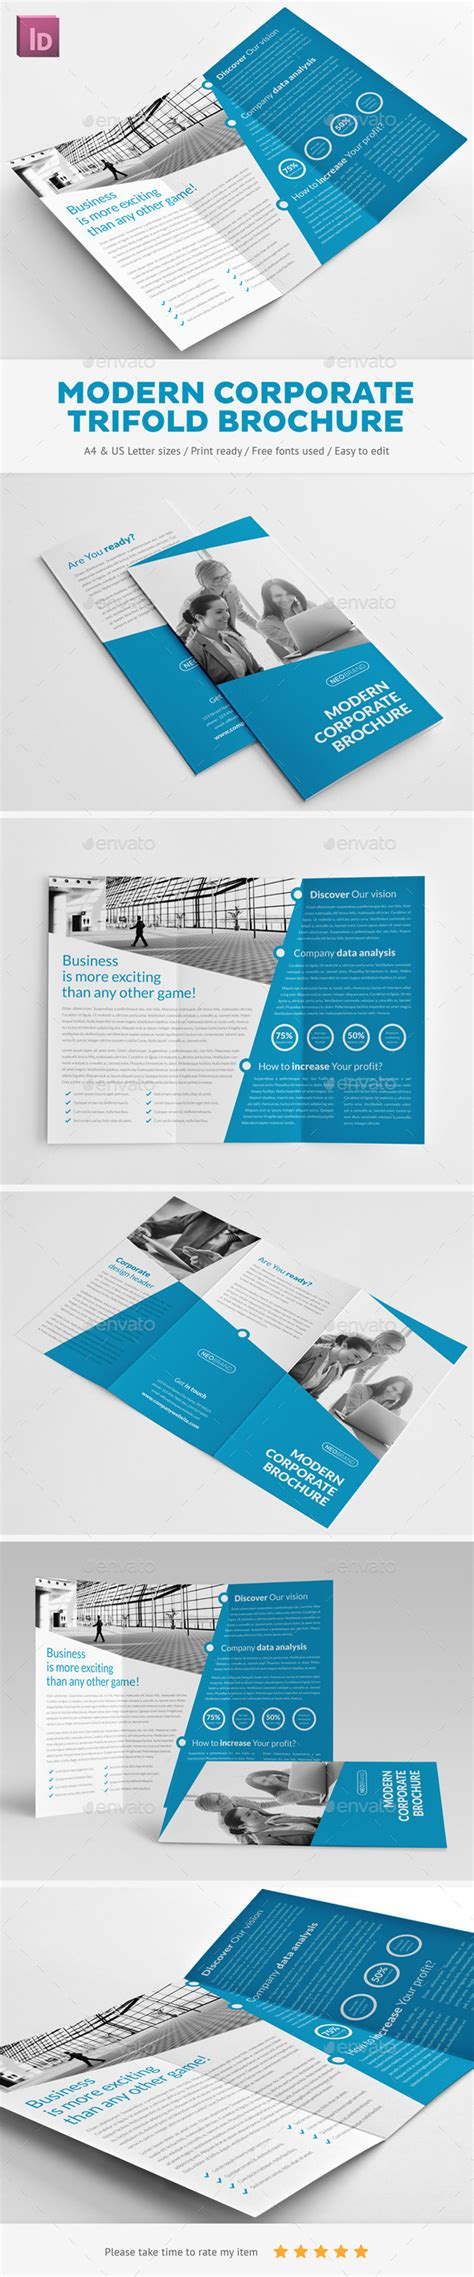 graphicriver brochure template print template graphicriver modern corporate trifold